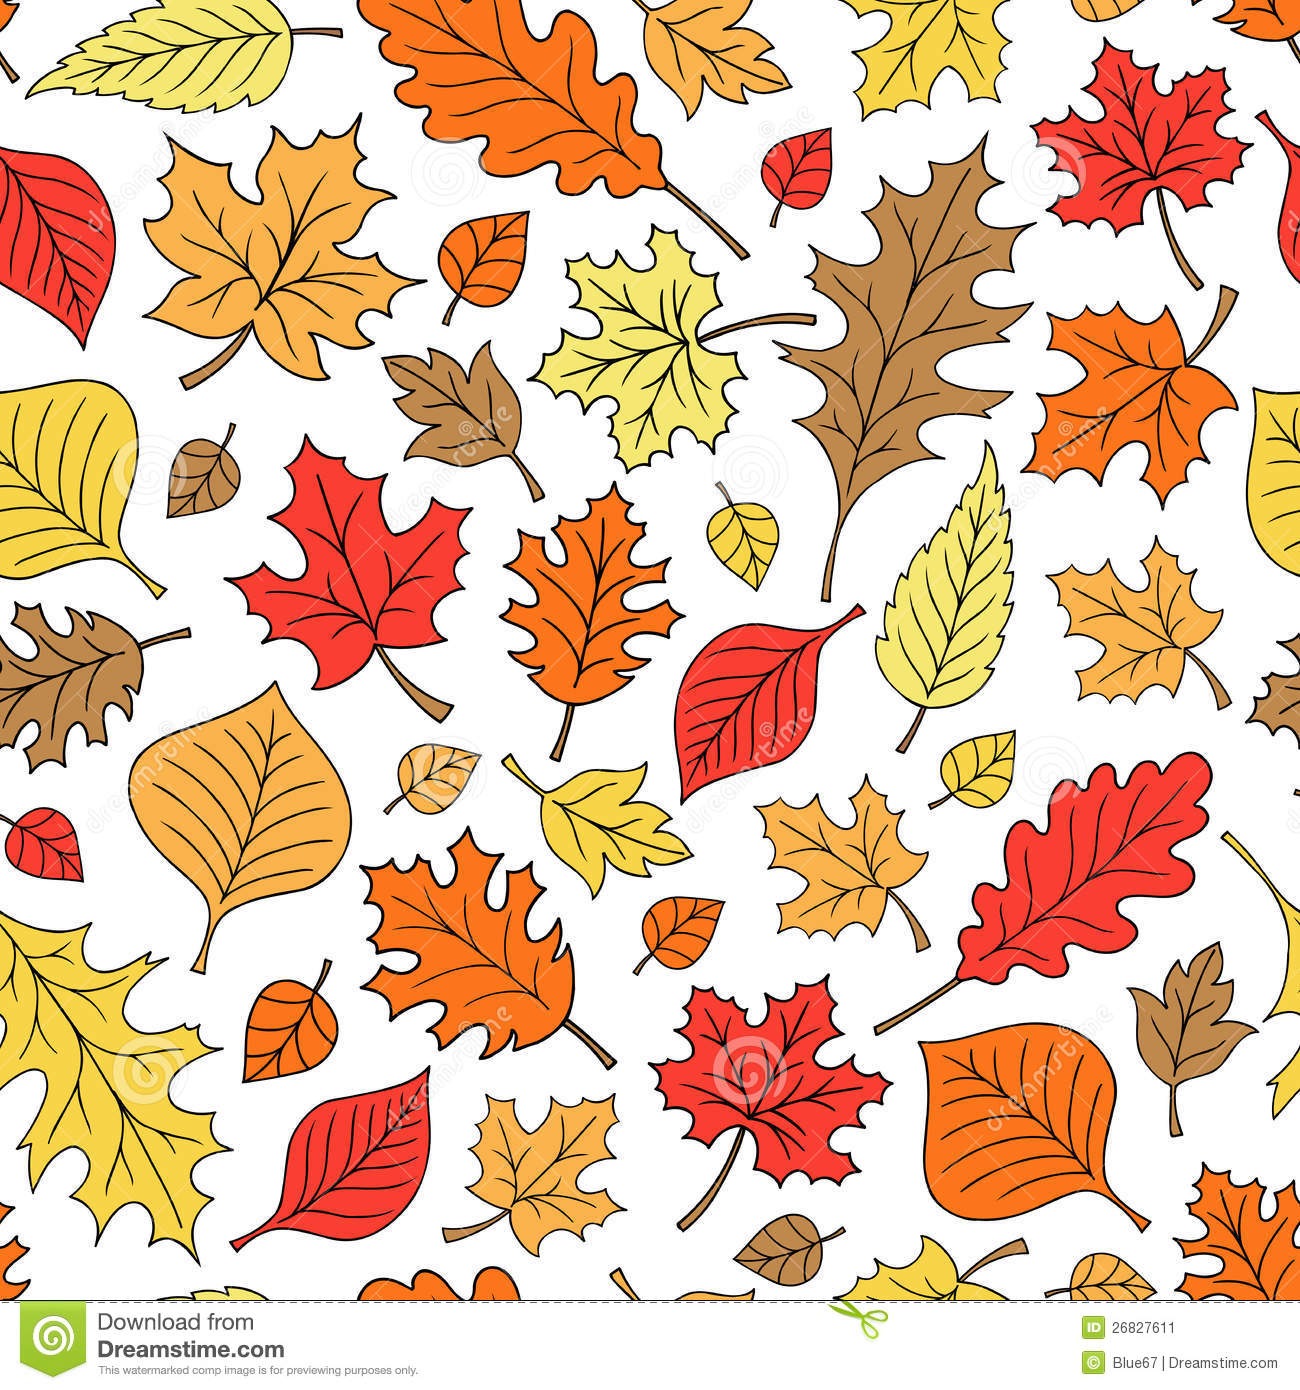 Fall Maple Leaf Tiled Wallpaper Seamless Autumn Fall Leaves Pattern Vector Stock Vector